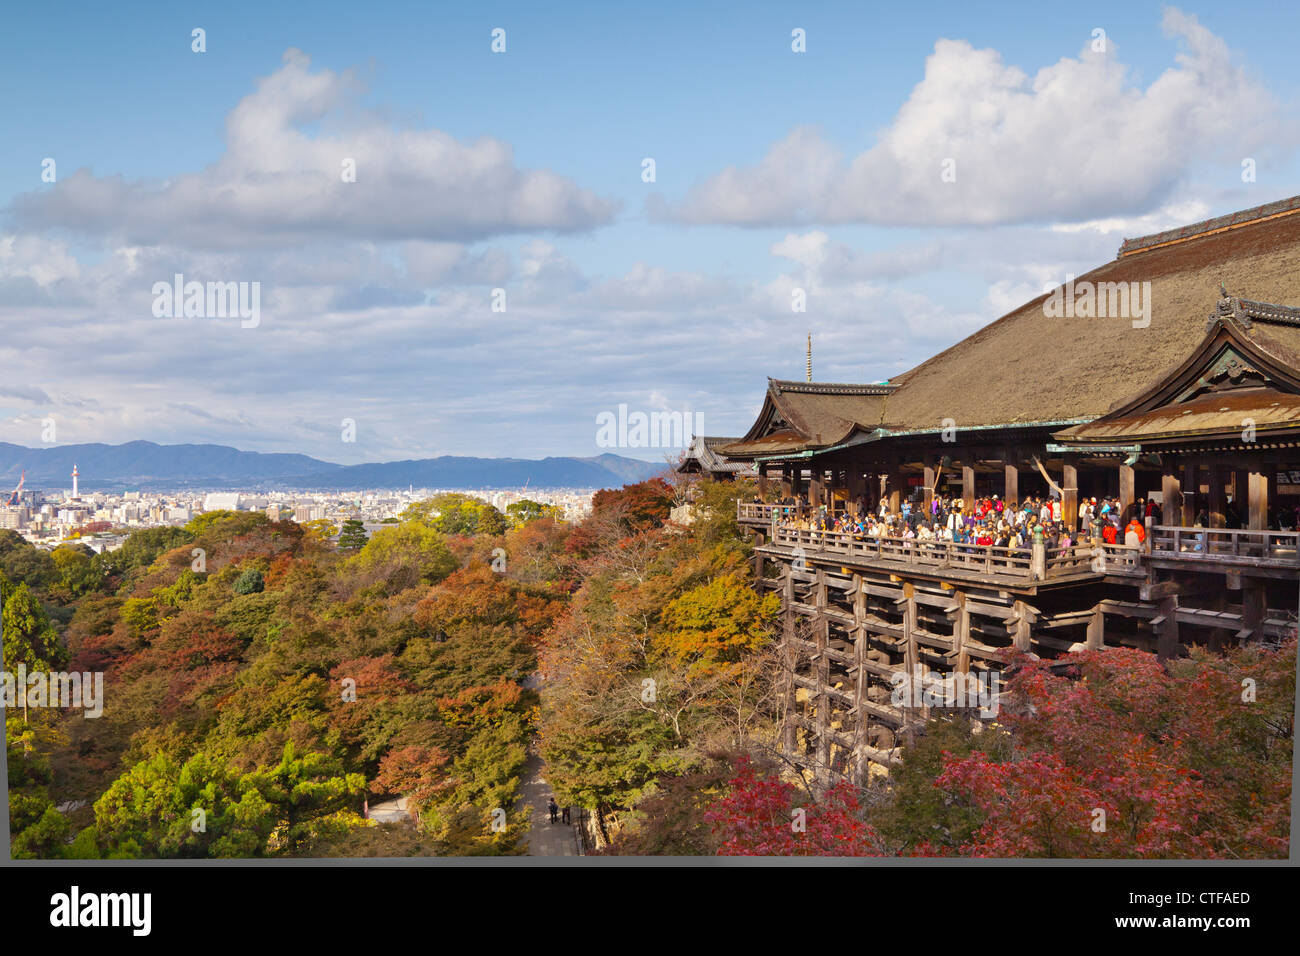 The temple of Kiyomizu-dera in Kyoto is one of japan's most visited sites. - Stock Image